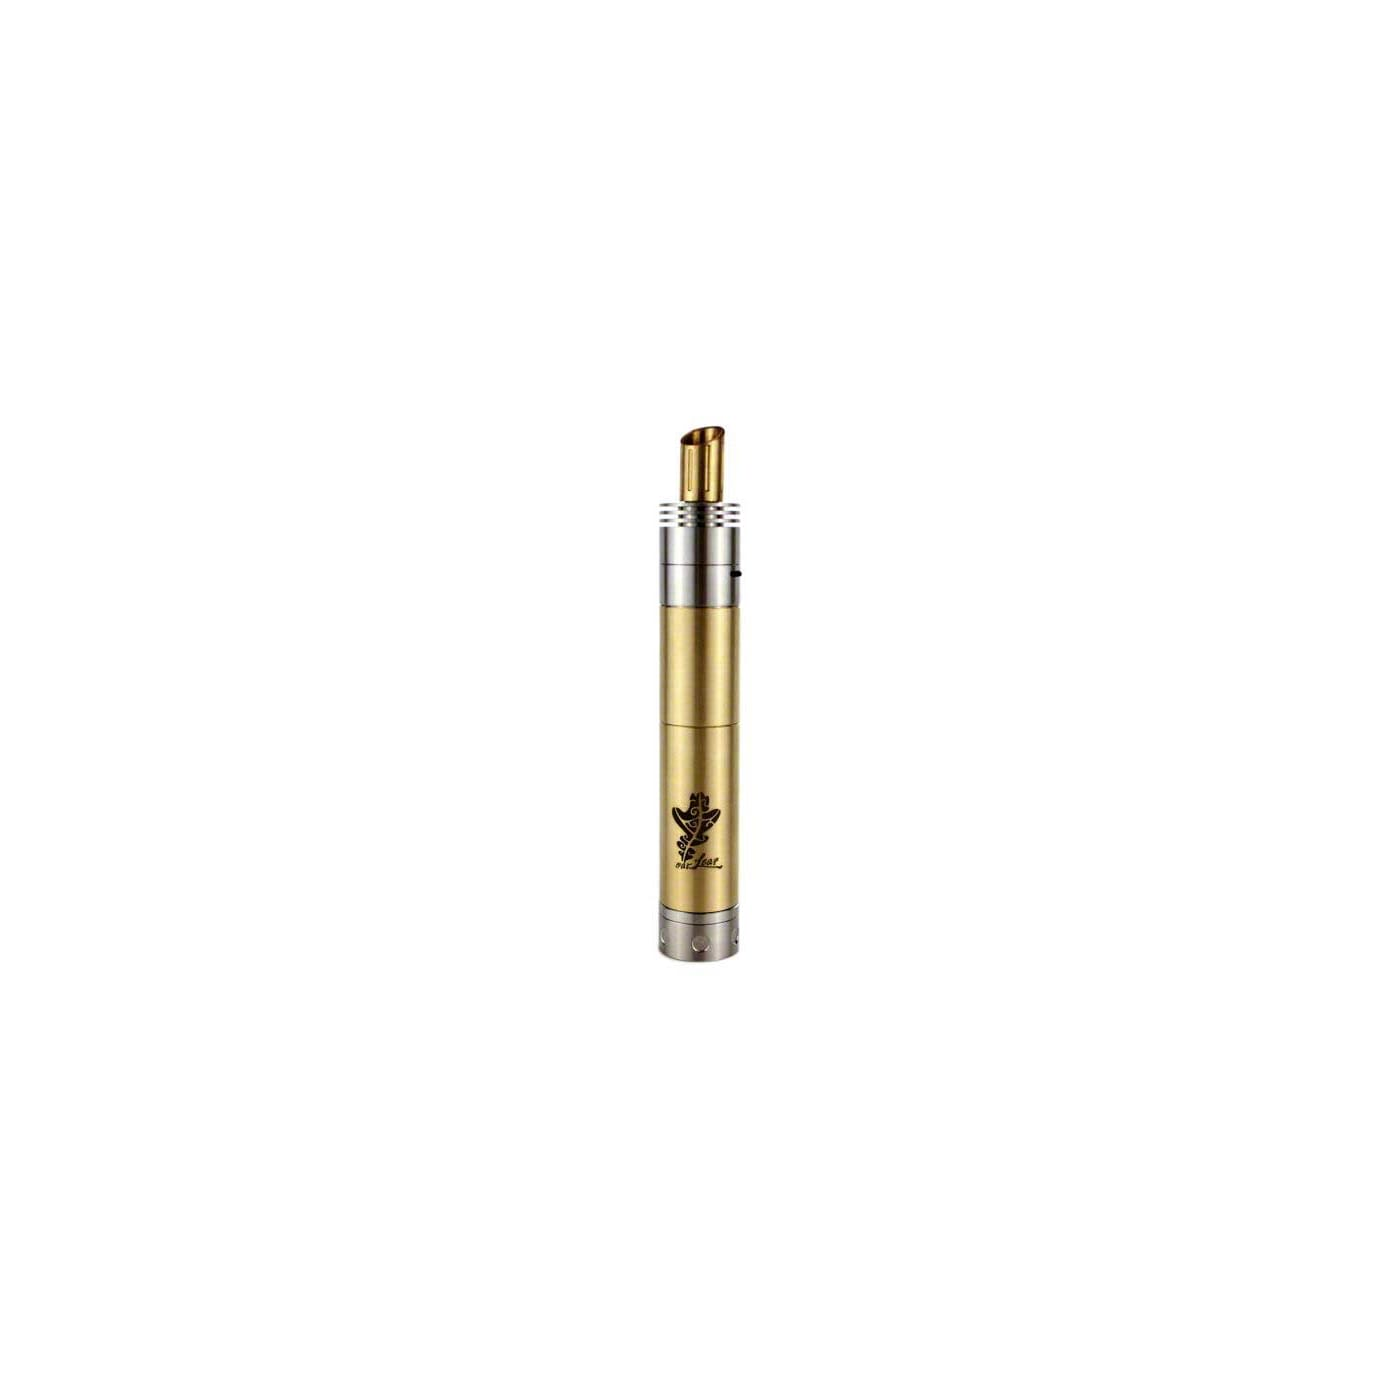 UDT V17 Oak-Leaf Hybrid with Atomizer